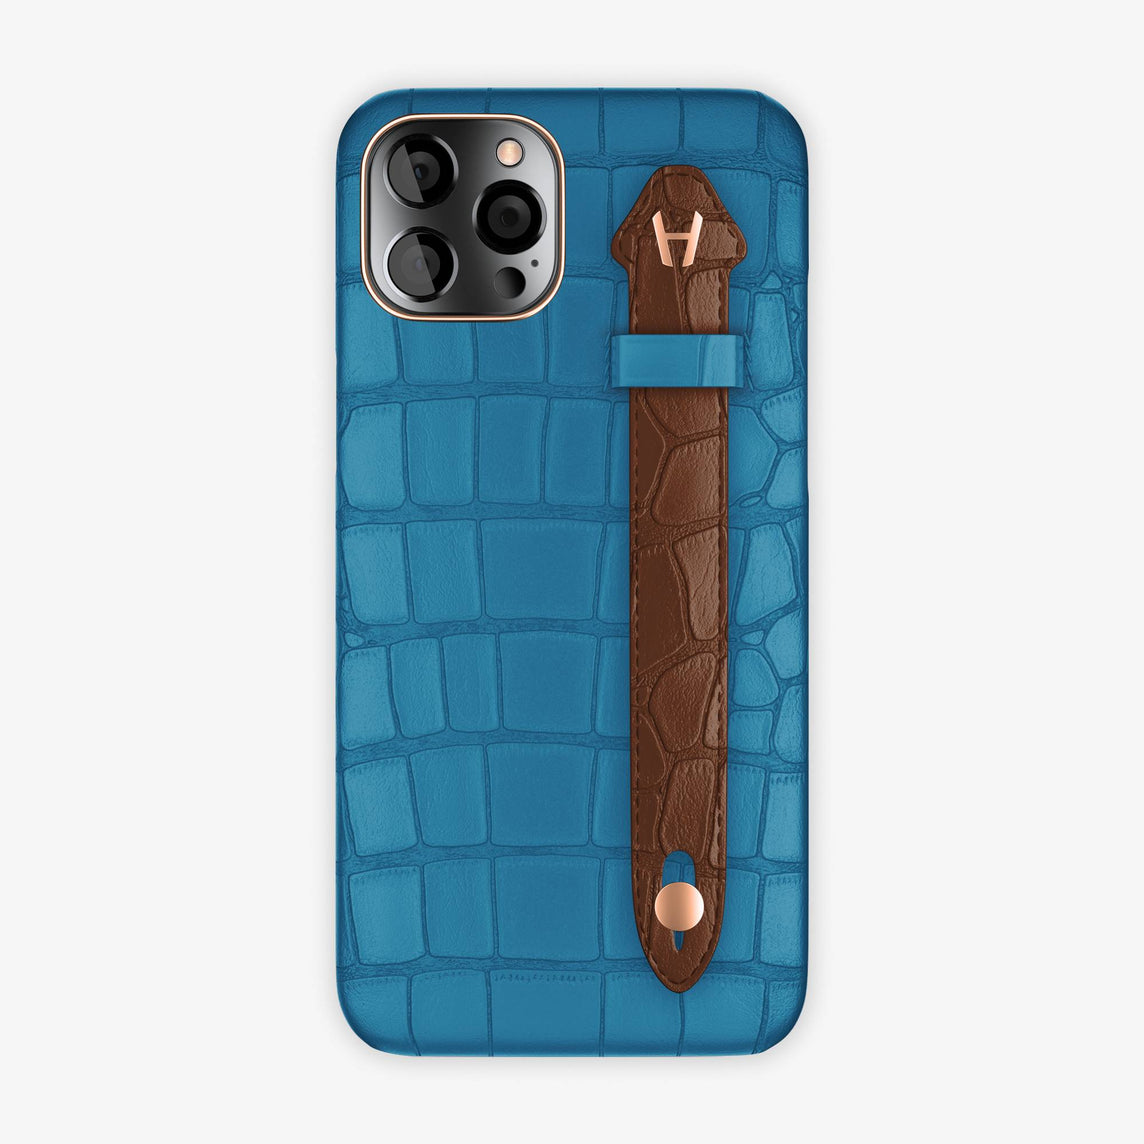 Alligator Side Finger Case iPhone 12 Pro Max | Blue Lagoon/Brown - Rose Gold